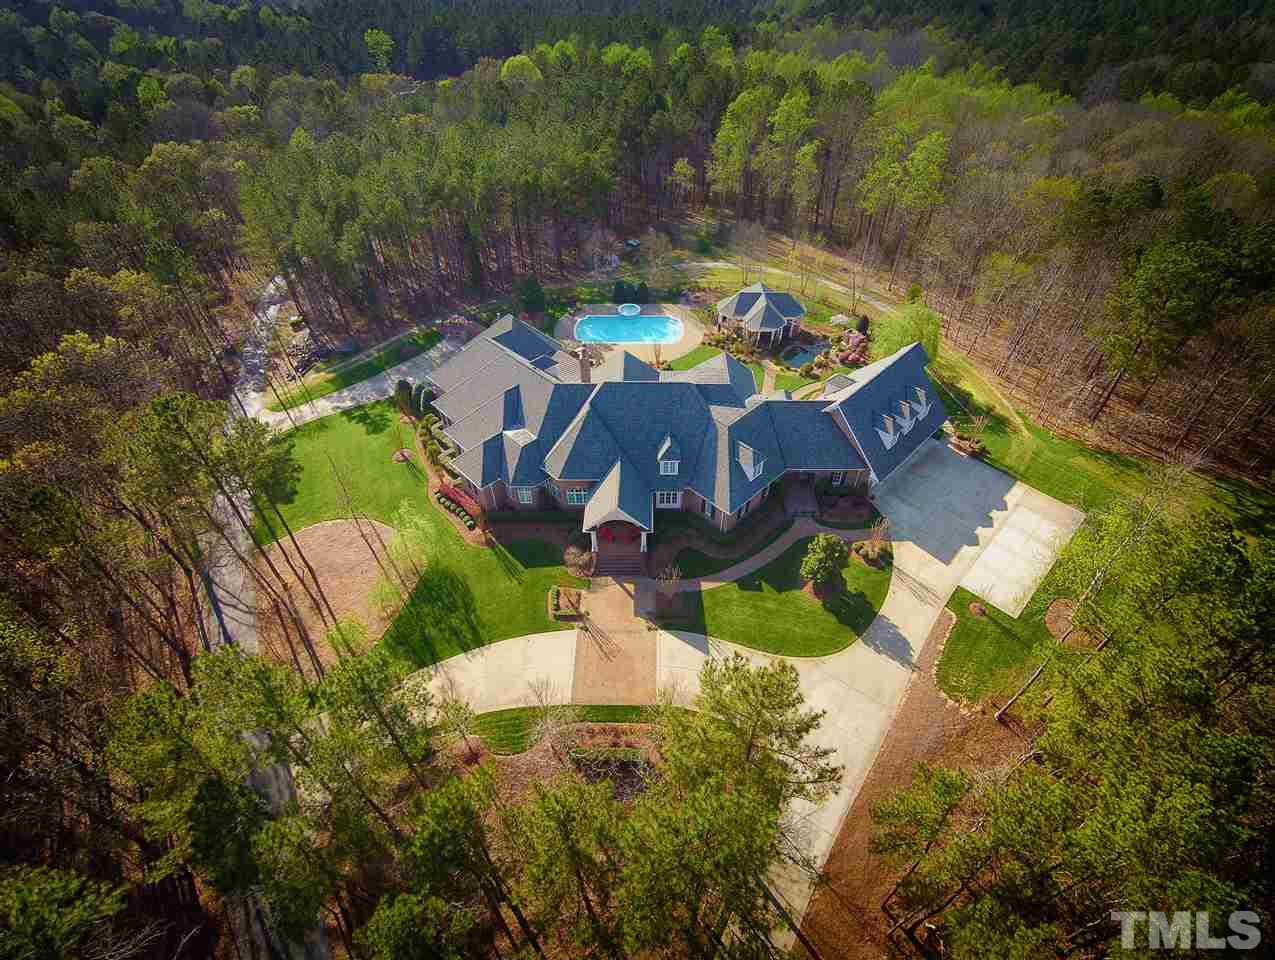 Sprawling 31 Acre Estate Home Located On Wake / Durham Cty Line. This Exceptional Property is Just Minutes from Falls Lake w/ Easy Access to Raleigh &  Durham. This Custom 5 BR, 7 BA Home Offers Amenities including An Open Floor Plan, Stunning Living Room, Huge Chef's Kitchen, 1st Floor Master Wing w/  Office, Exercise Room, Study & His / Hers Walk In Closets. A 4 Car Garage w/ Bathroom, Outdoor Loggia Overlooks Pool & Custom Waterfall w/ Koi Pond.  Landscaped & Sits On 31+/- Acres Of Privacy!